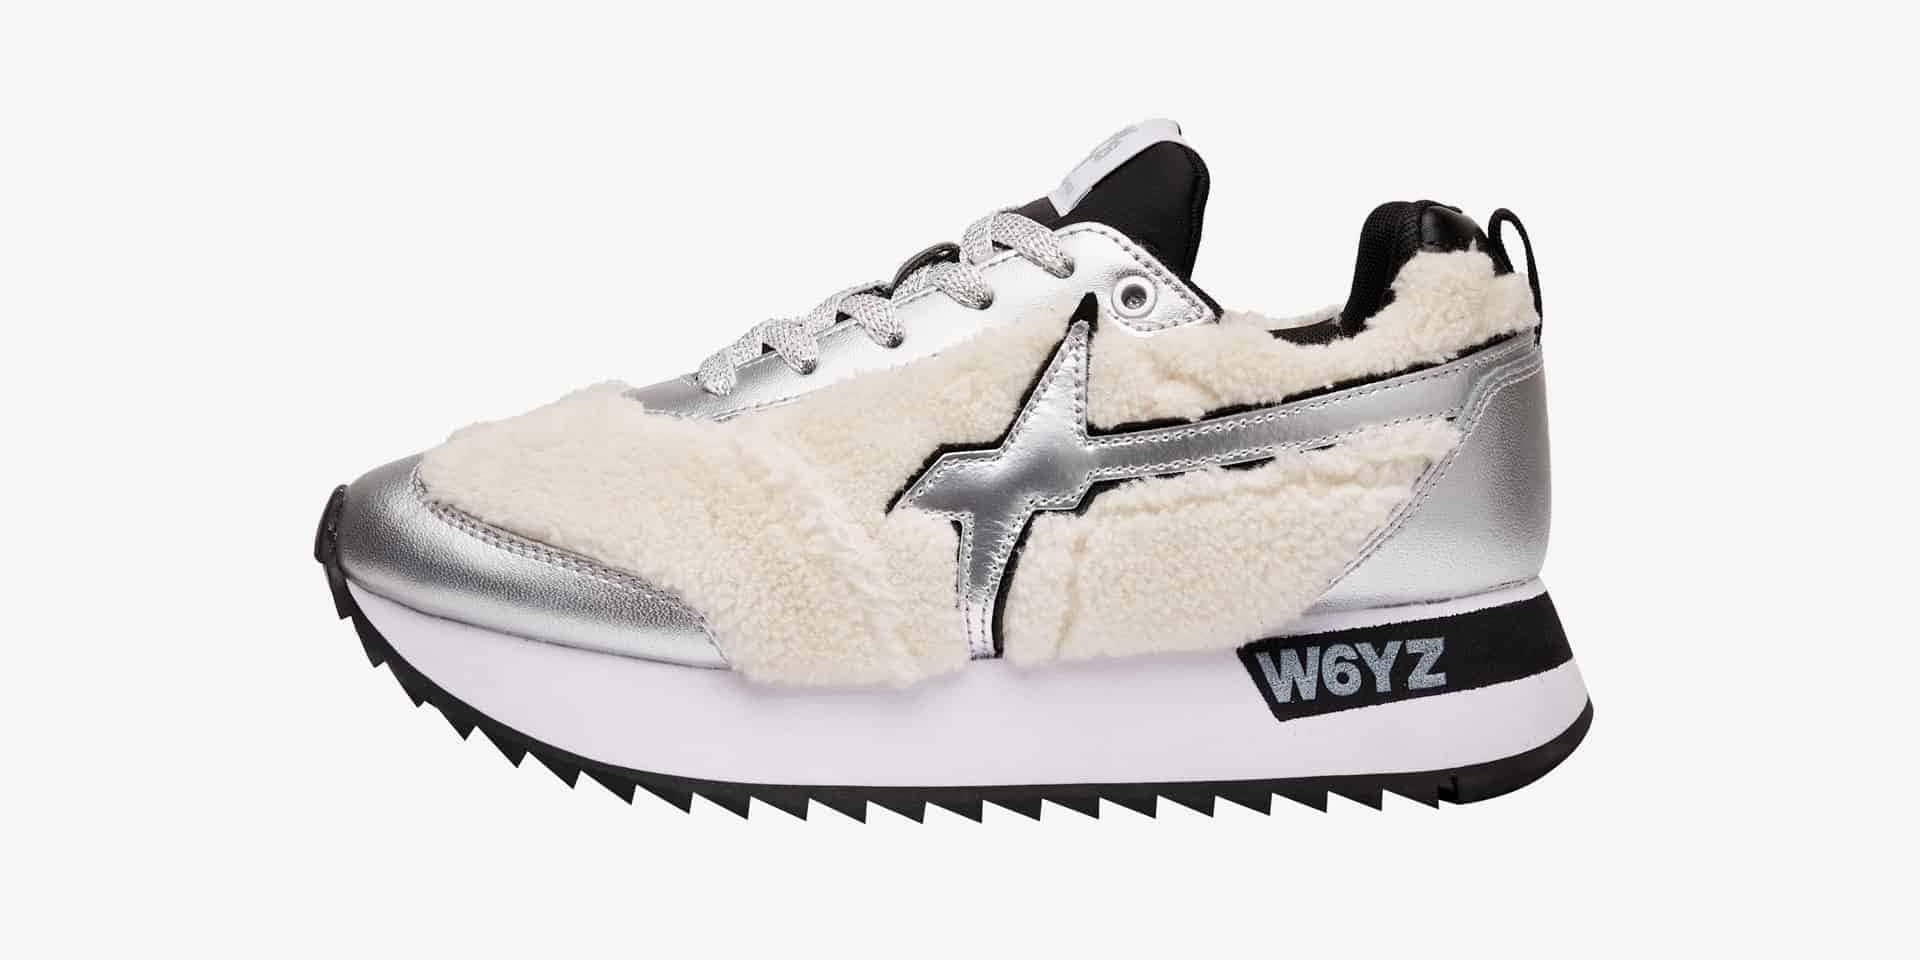 KIS-W. - Leather and faux fur sneakers - Silver/White